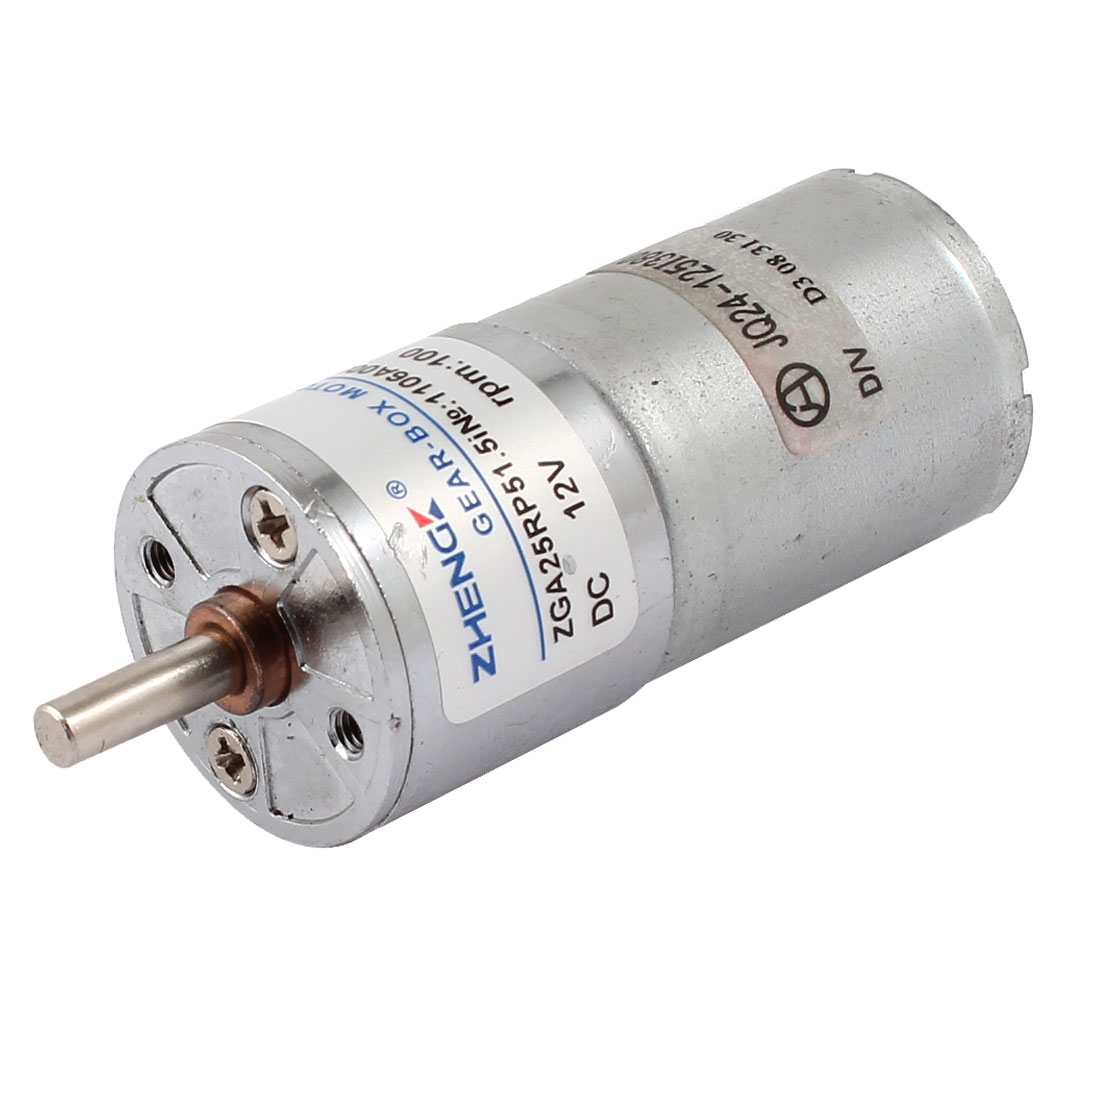 DC 12V 8300RPM Speed Reduce Electric Geared Box Motor for DIY Toys